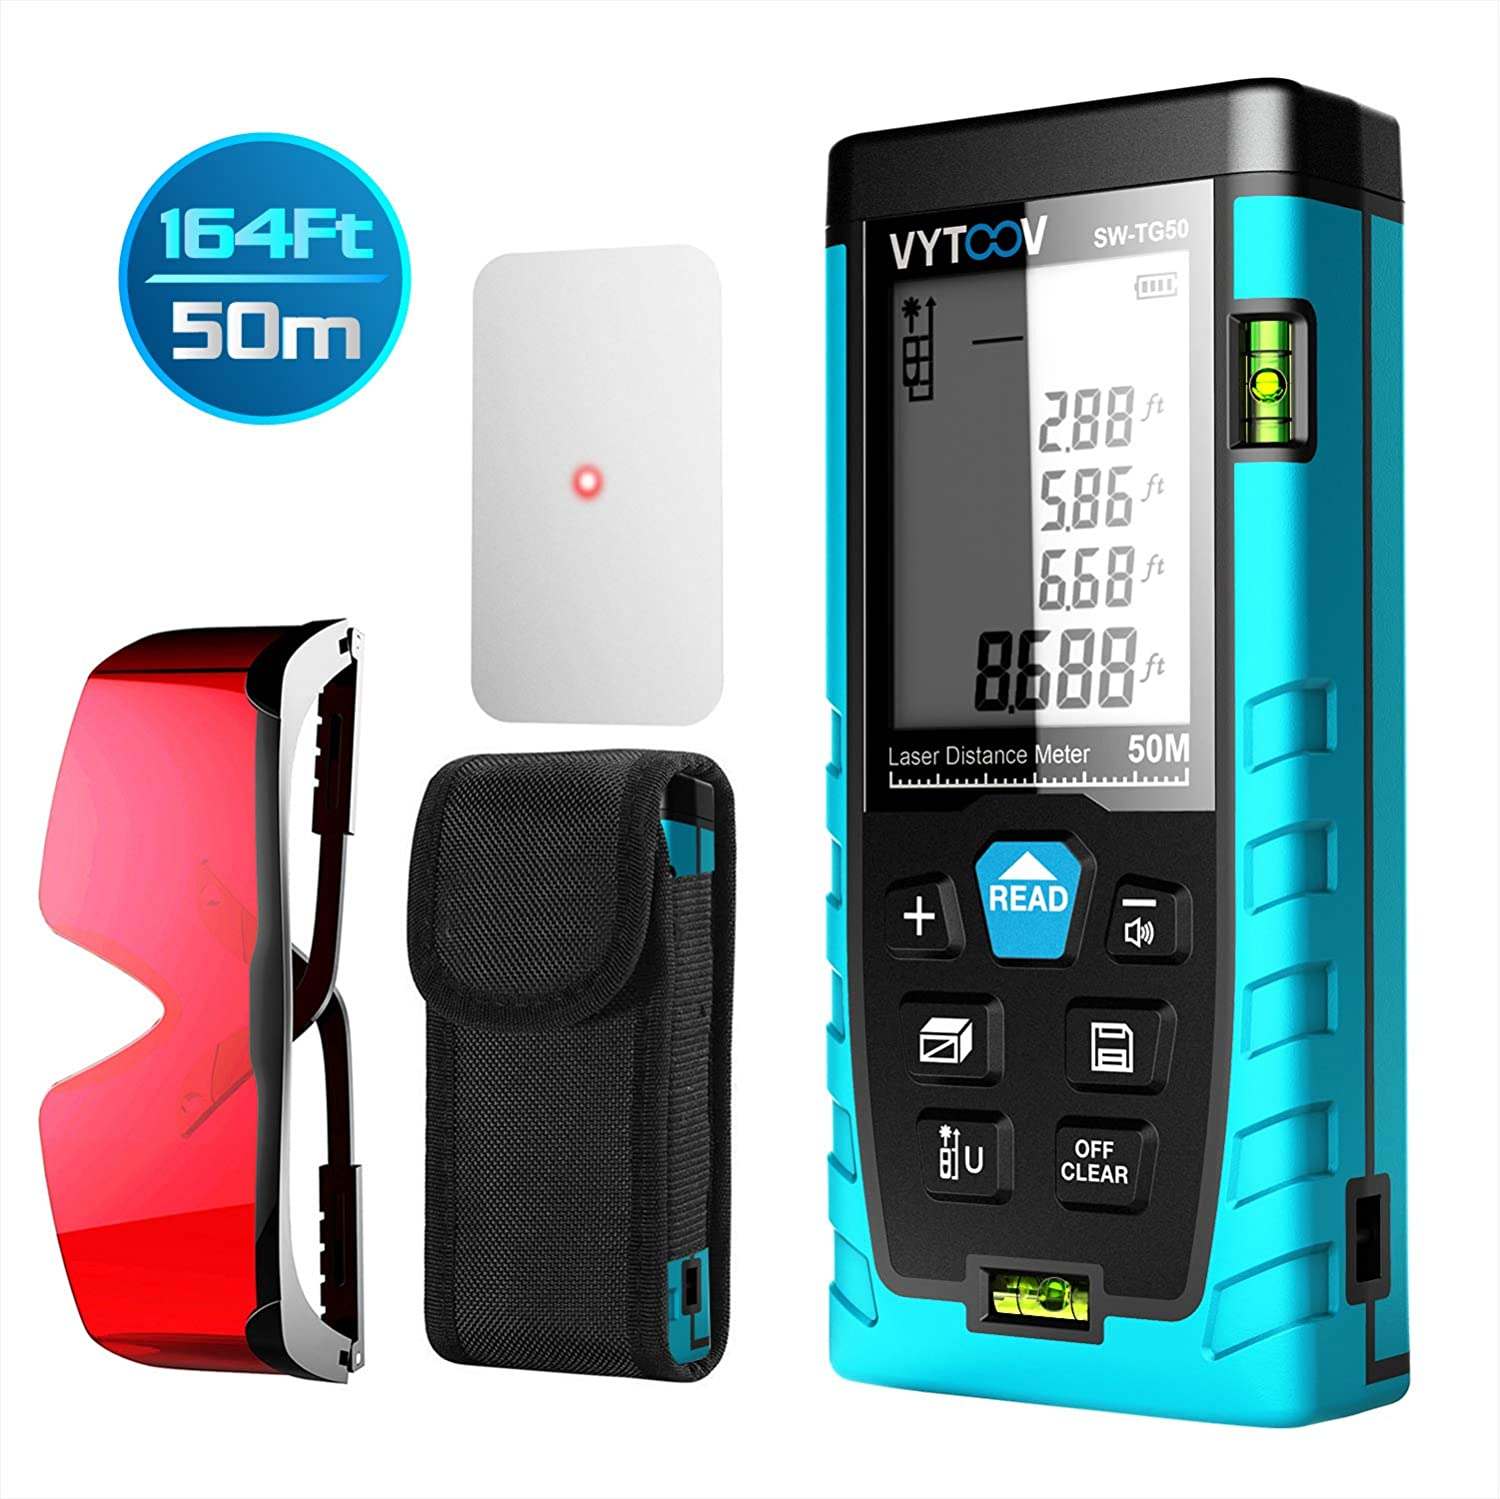 Laser Measuring Device with Pythagorean Mode Volume Calculation TG-50m 164FT//50M Measure Distance Area Laser Measure,VYTOOV Laser Tape Measure with Target Plate /& Enhancing Glasses